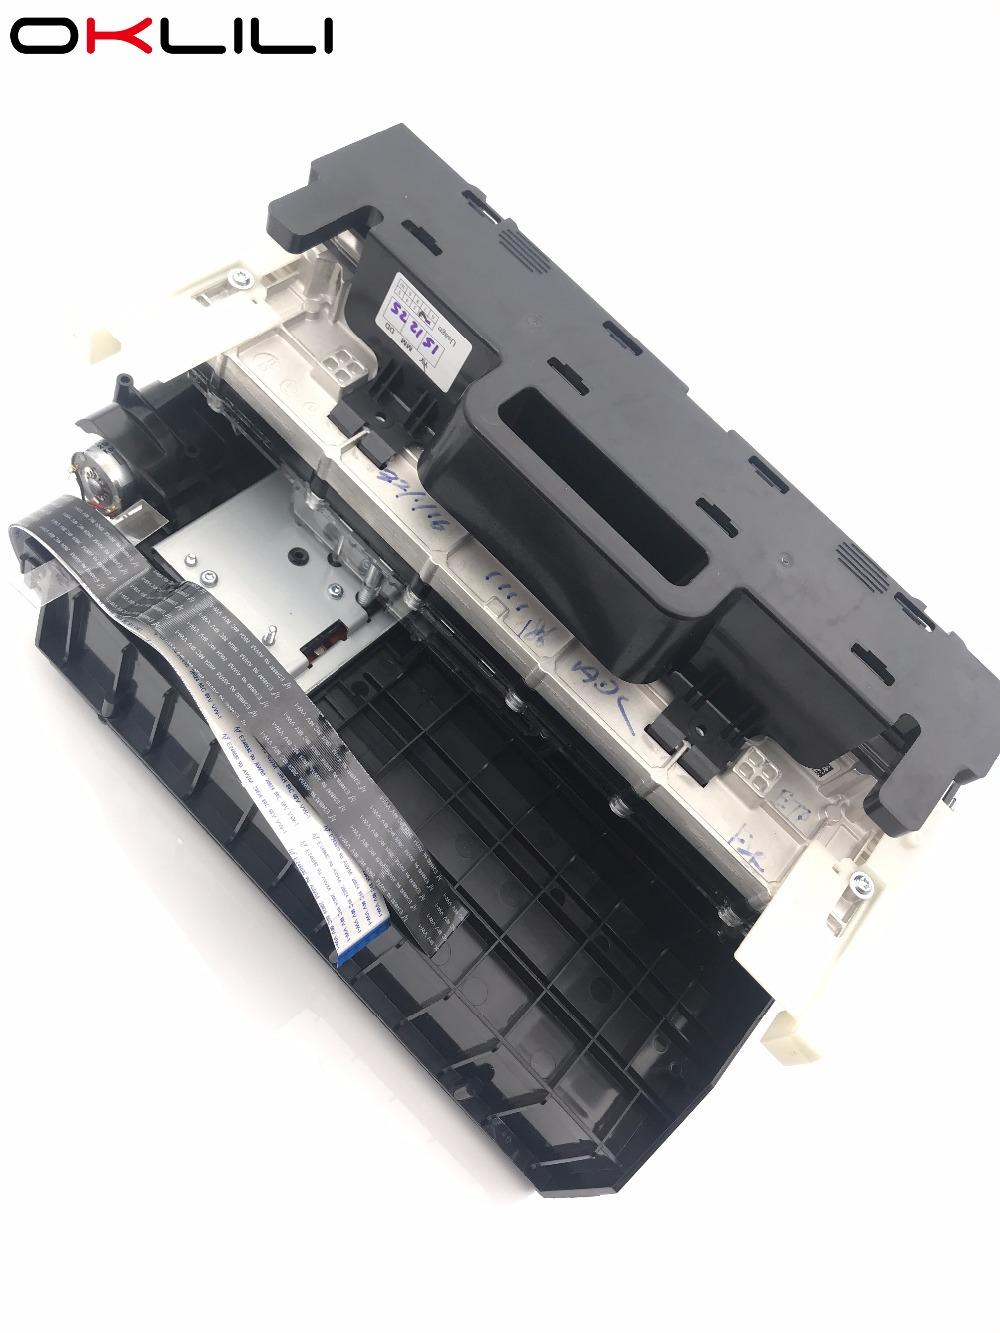 CN646-60014 970 971 970XL 971XL Printhead Printer Print Head for HP OfficeJet Pro X451 X551 X476 X576 X451dn X451dw X476dn 2pcs japan alps 10k 20k 50k 100k 250k rk27 double volume potentiometer the default send 50k